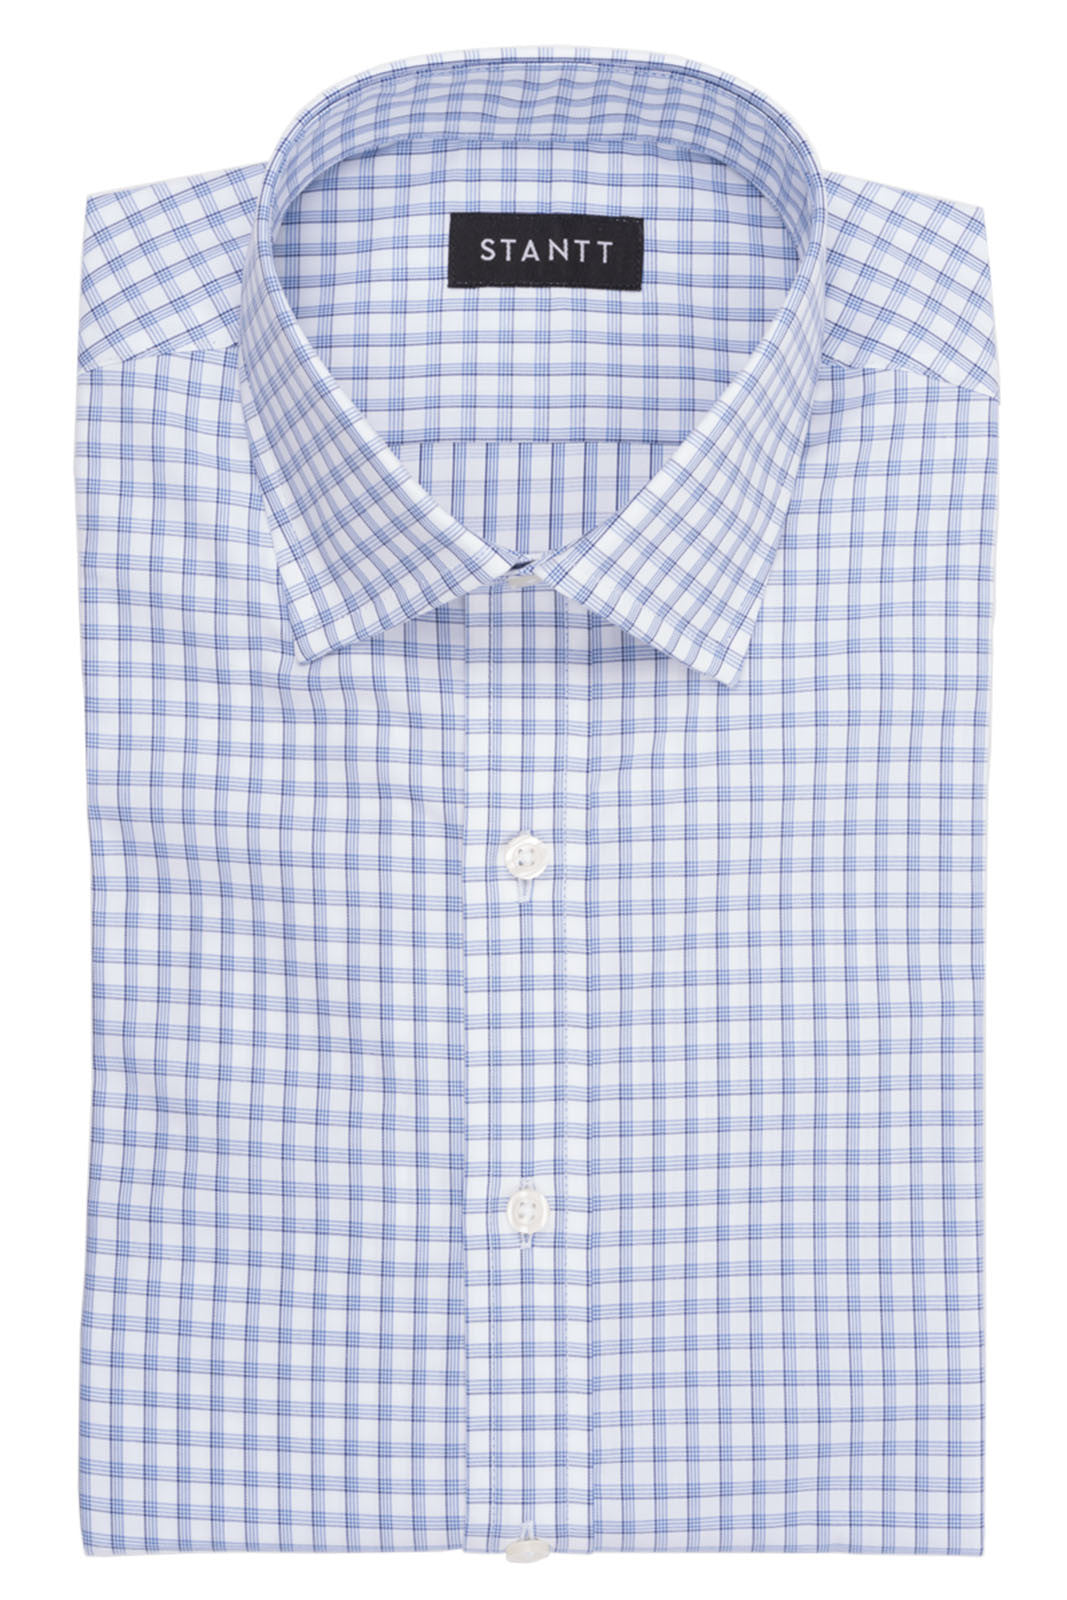 Wrinkle-Resistant Navy Accented Multi Grid Check: Modified-Spread Collar, Barrel Cuff